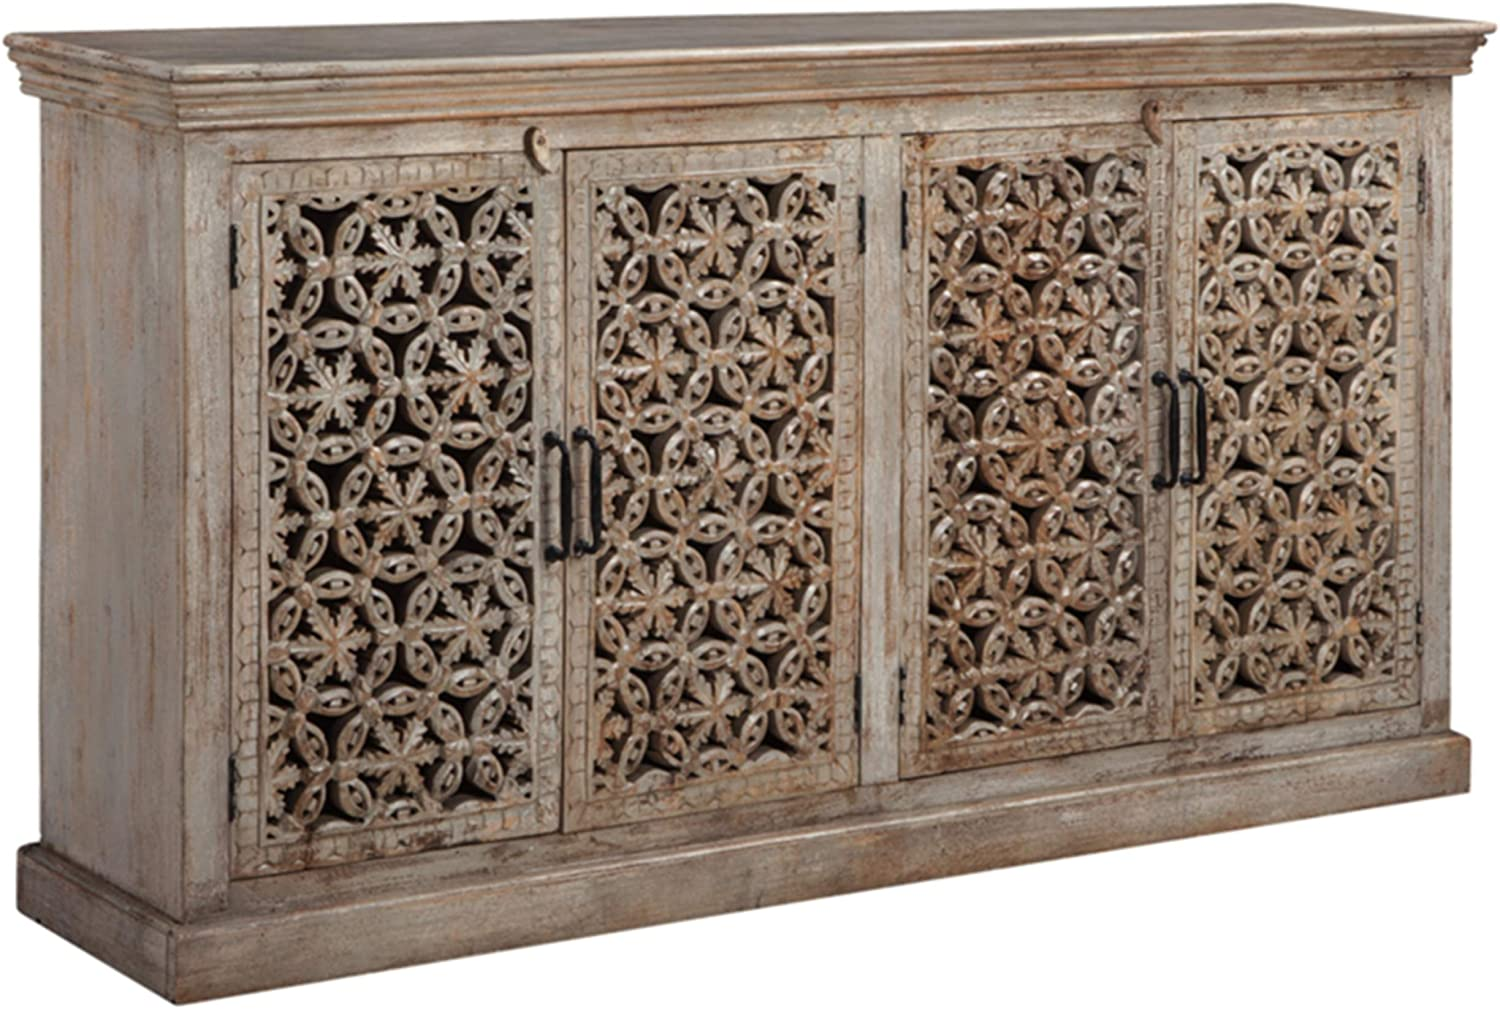 Signature Design by Ashley - Fossil Ridge 4-Door Accent Cabinet - Contemporary - Hand Carved Medallion Pattern - Amber